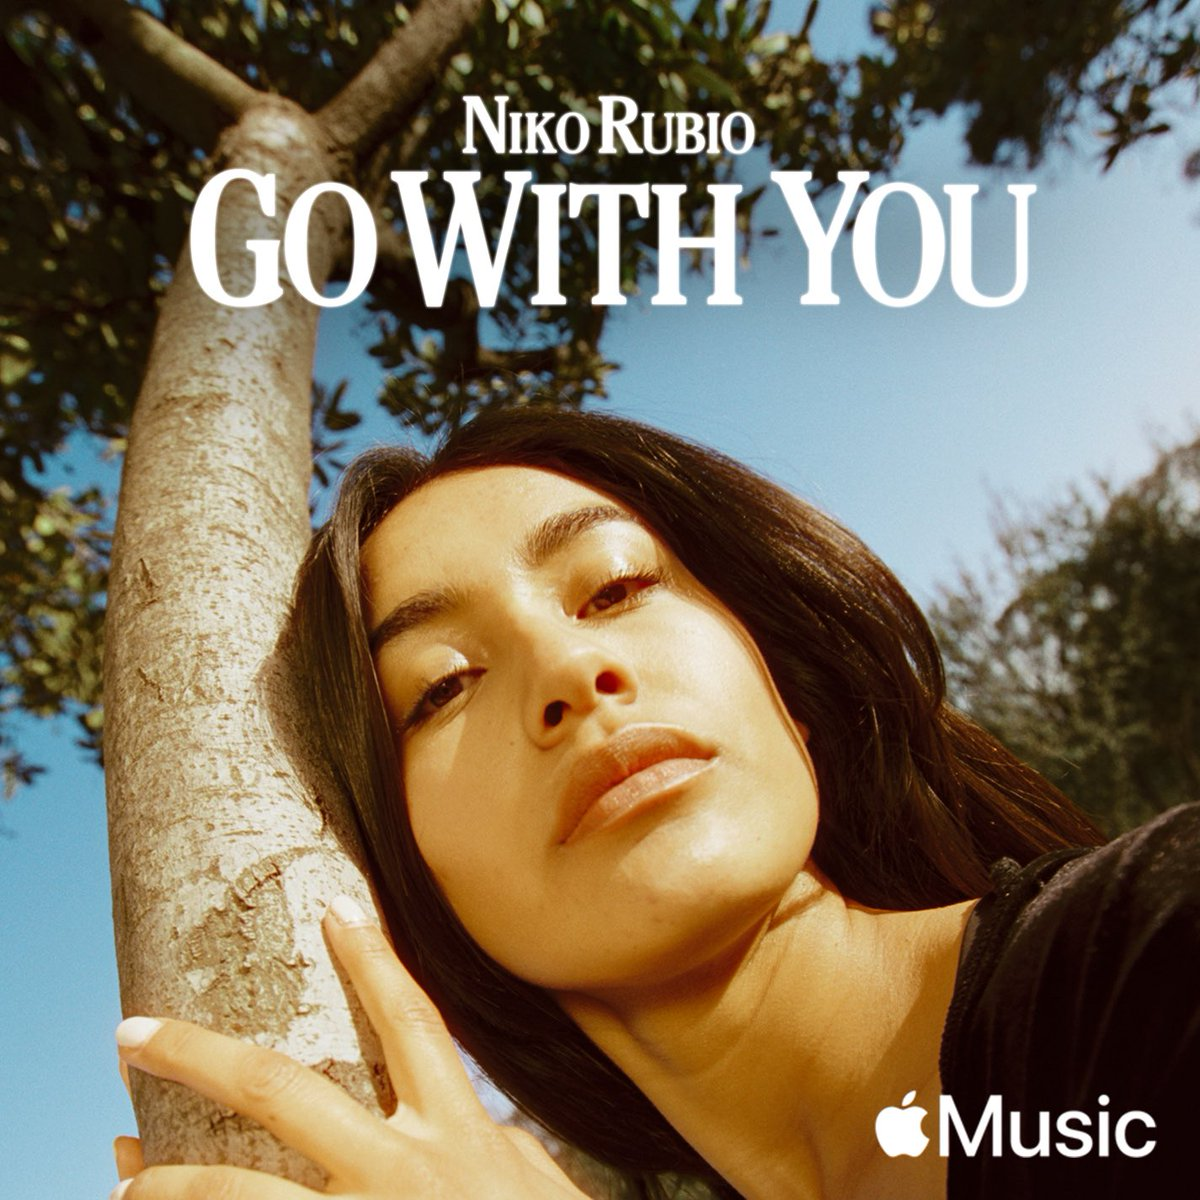 """Hear my new single """"Go With You"""" on @AppleMusic 1 with @ZaneLowe tomorrow at 9:30am PST. 🐙🤍 https://t.co/sy5WBdV3M6"""